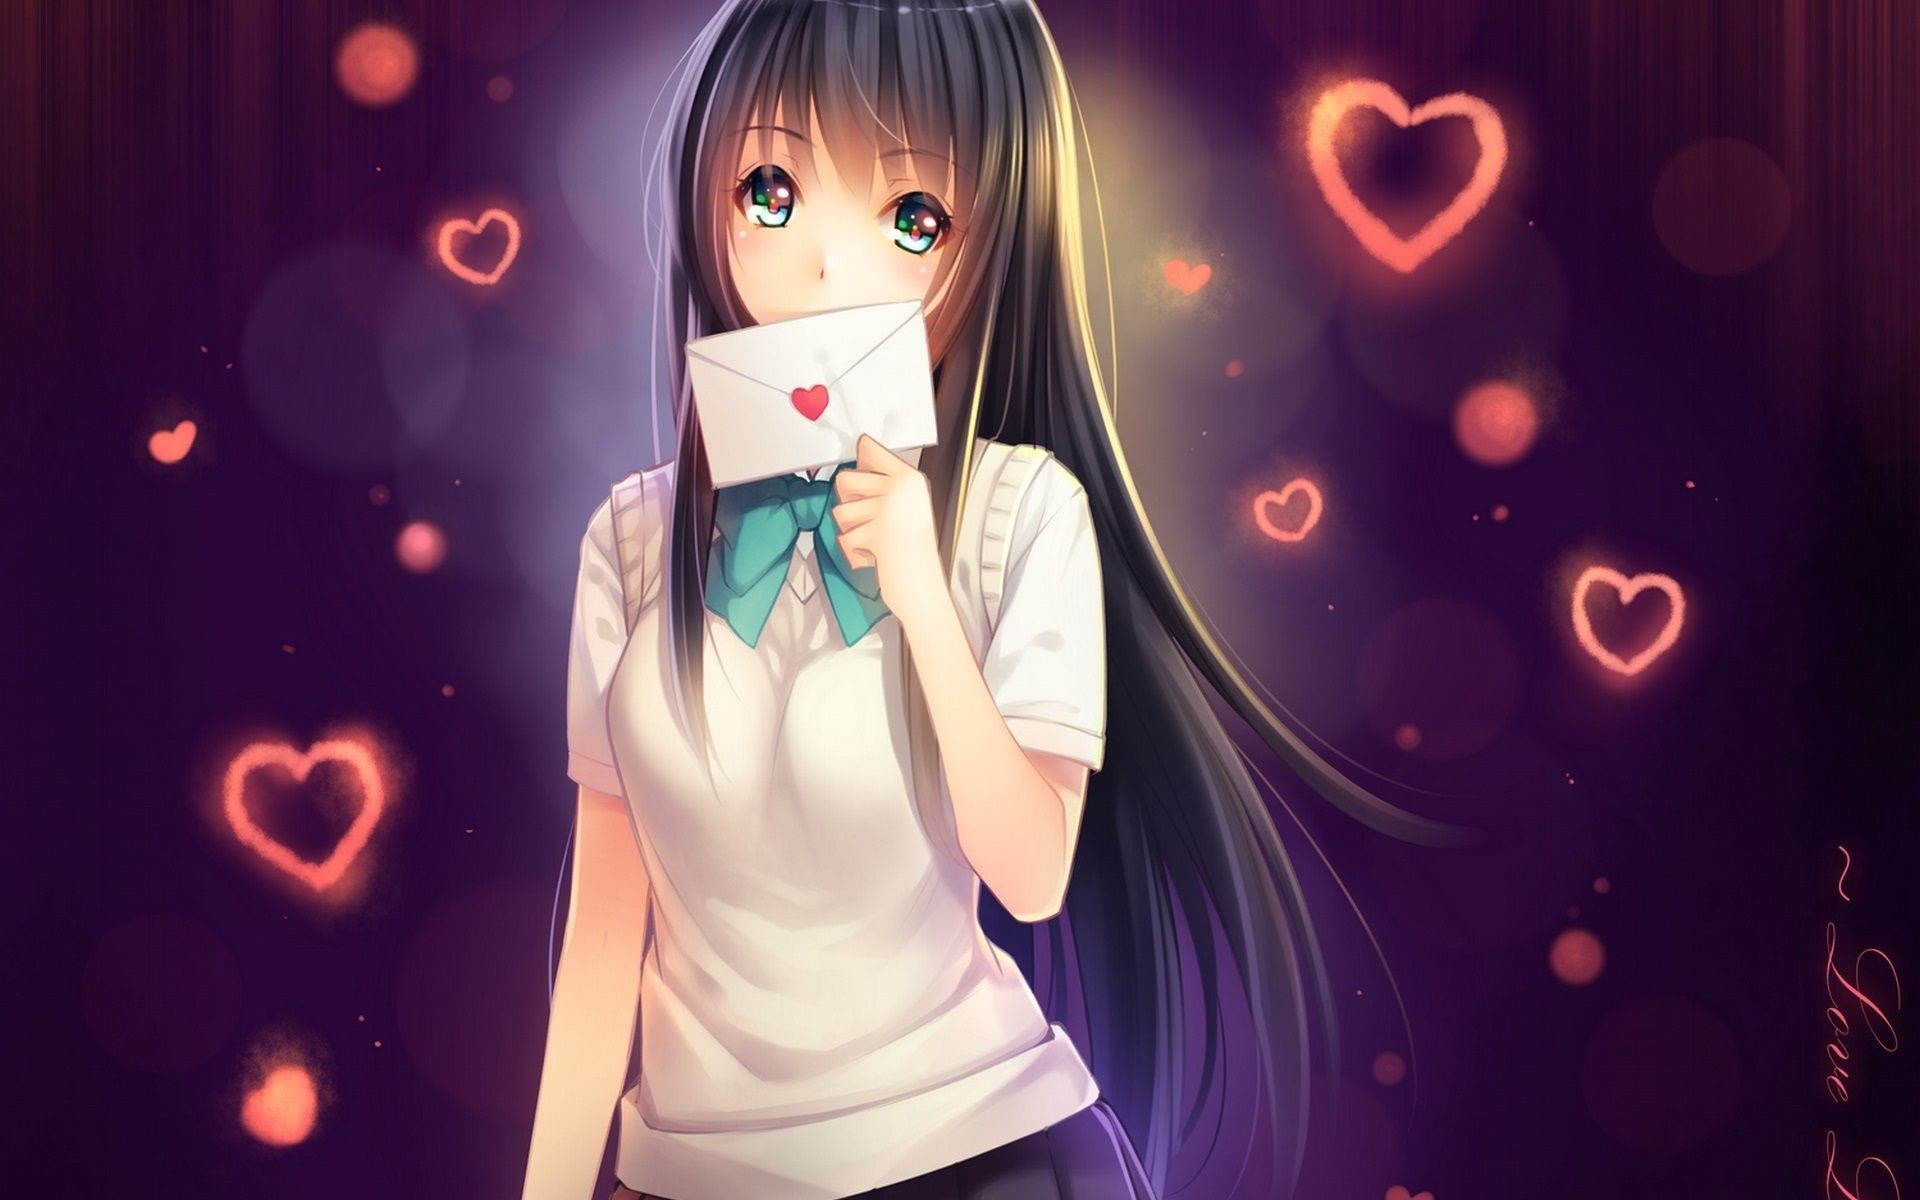 Cute Couple Kissing Wallpaper Download Anime Love Wallpaper 78 Images